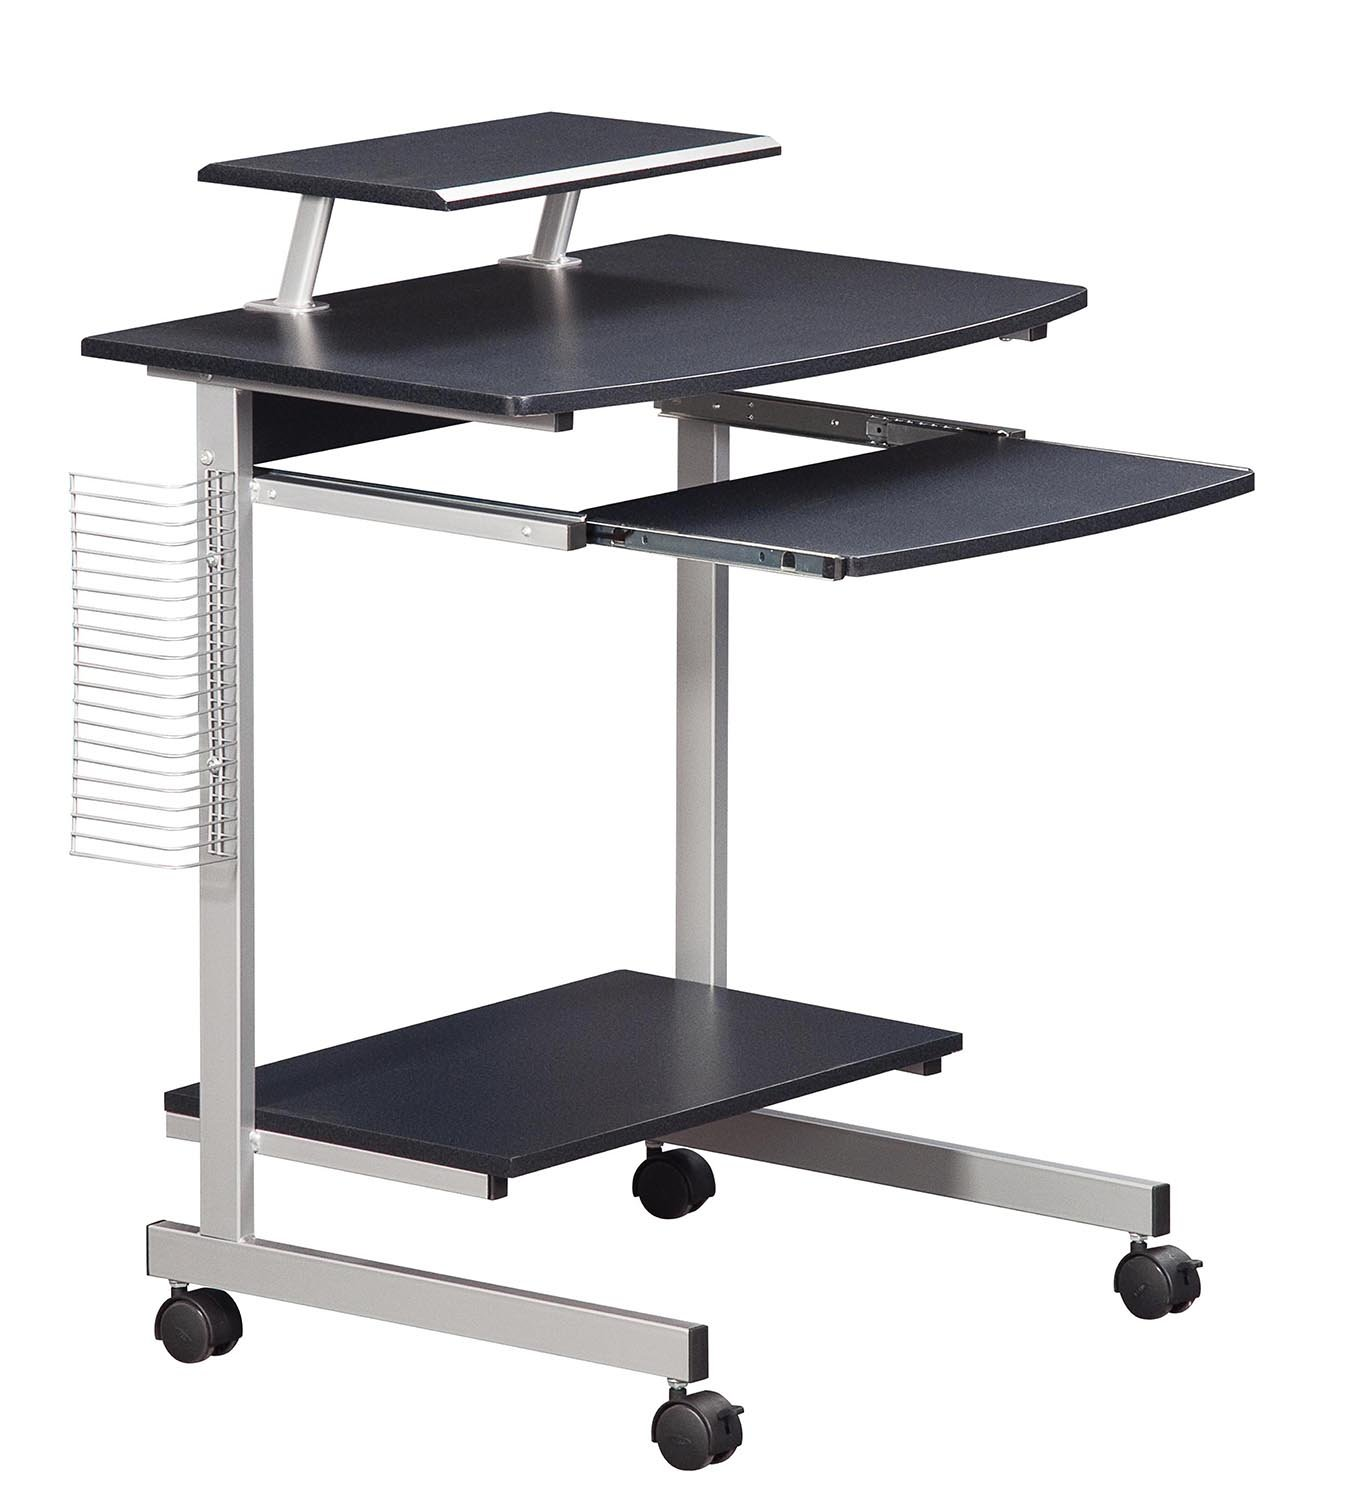 Mobile & Compact Complete Computer Workstation Desk. Color: Graphite by Techni Mobili